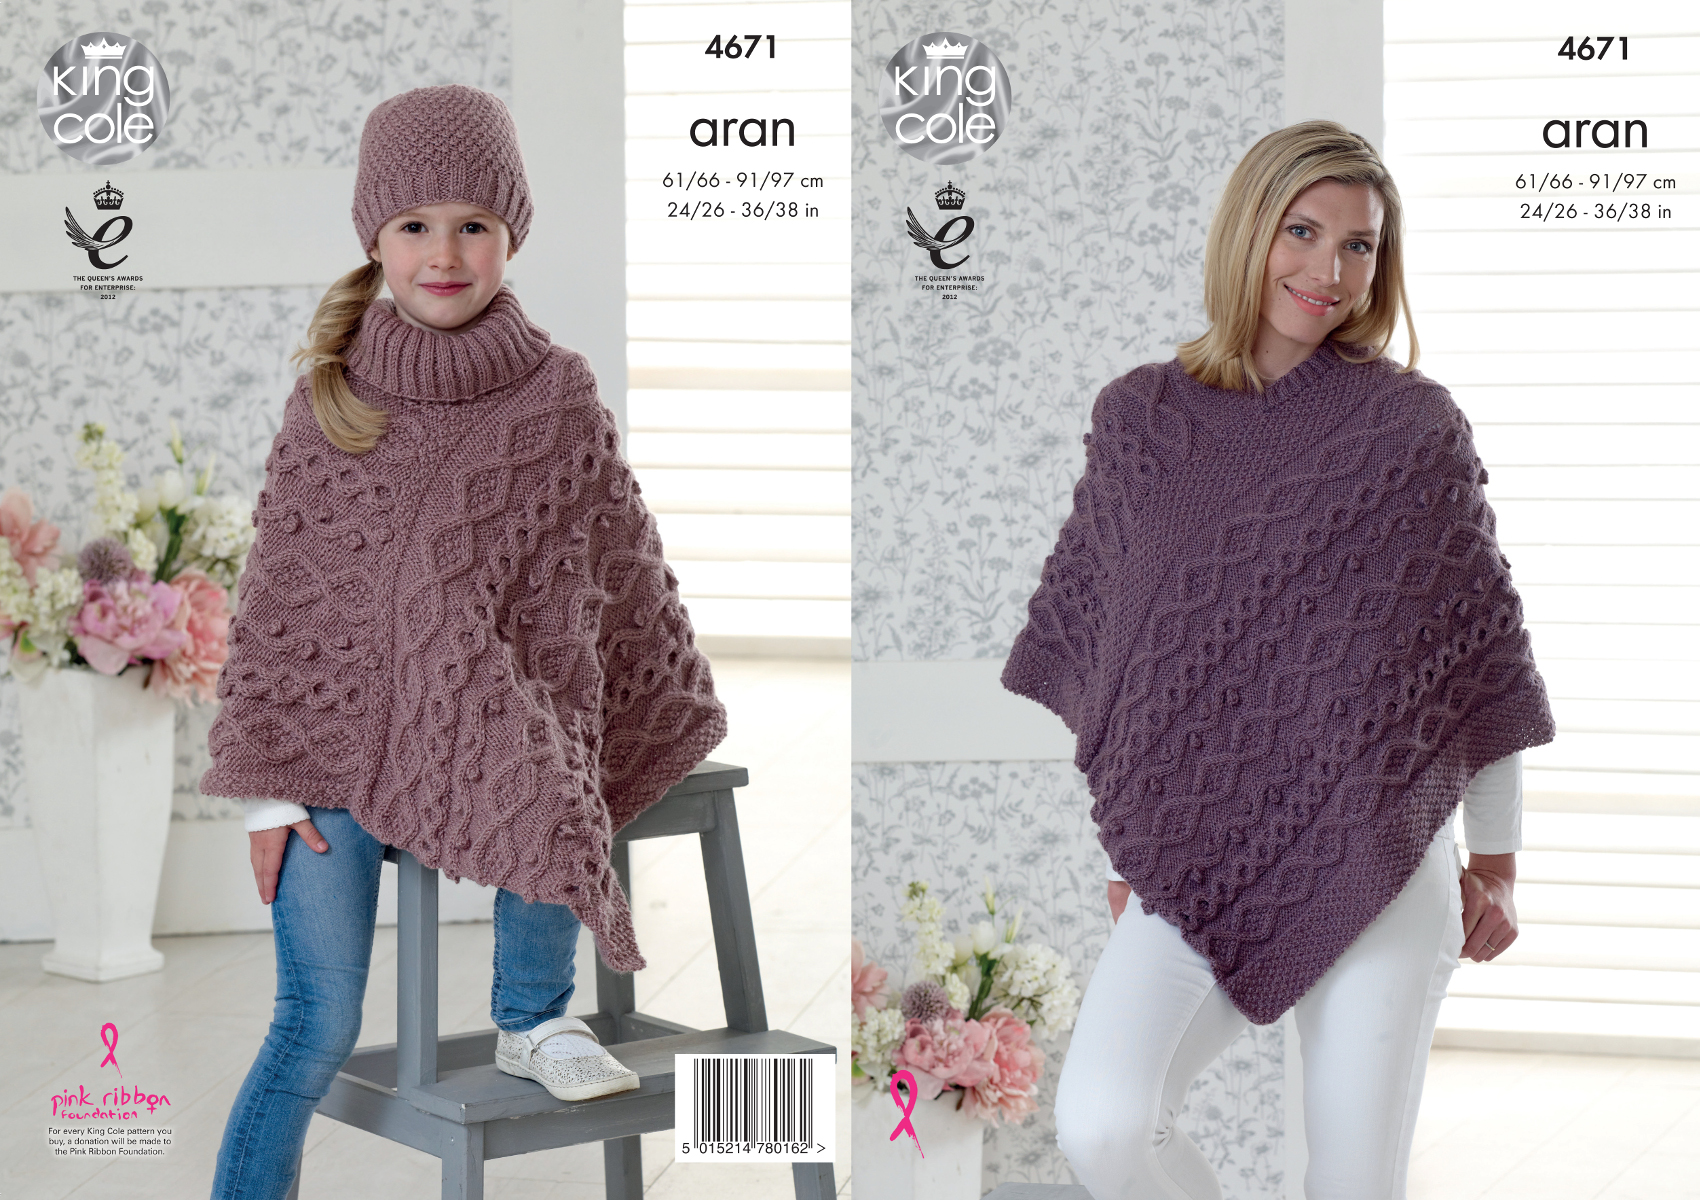 King Cole Ladies & Girls Aran Knitting Pattern V or Polo Neck Poncho ...